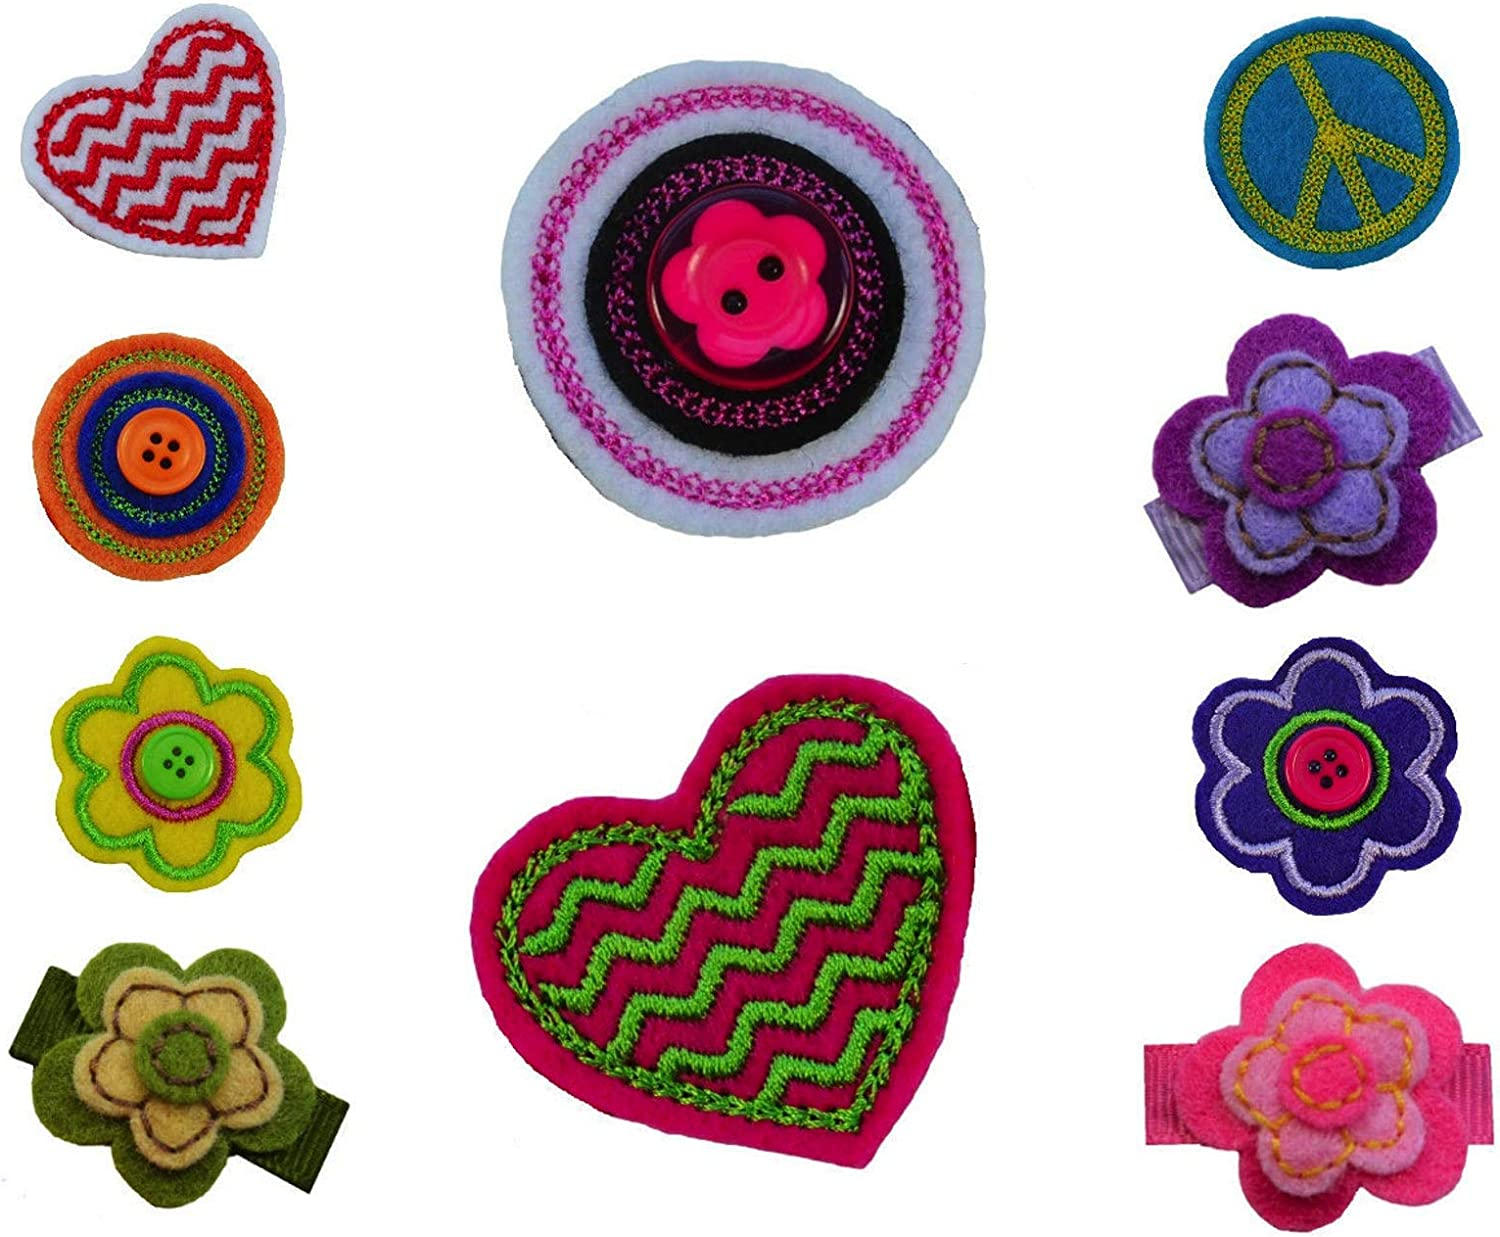 SALENEW very popular Long Beach Mall Girls Set of 10 Felt Hair Clips Holder Funny Bow By Gir and FREE